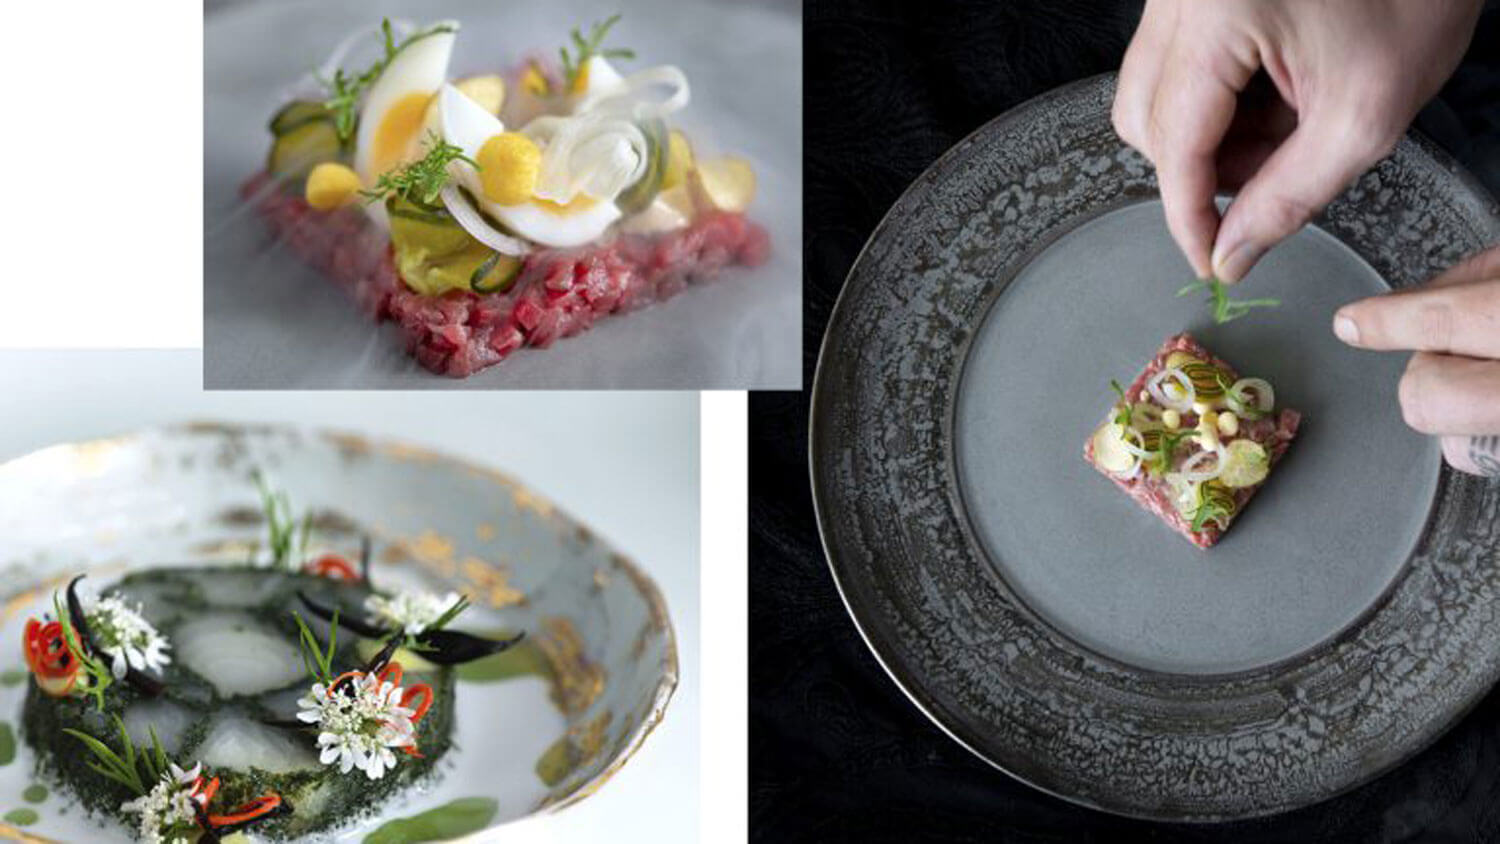 Belgian chef Nic Vanderbeeken uses local produce as much as he can in the fine dishes turned out at Aperitif.